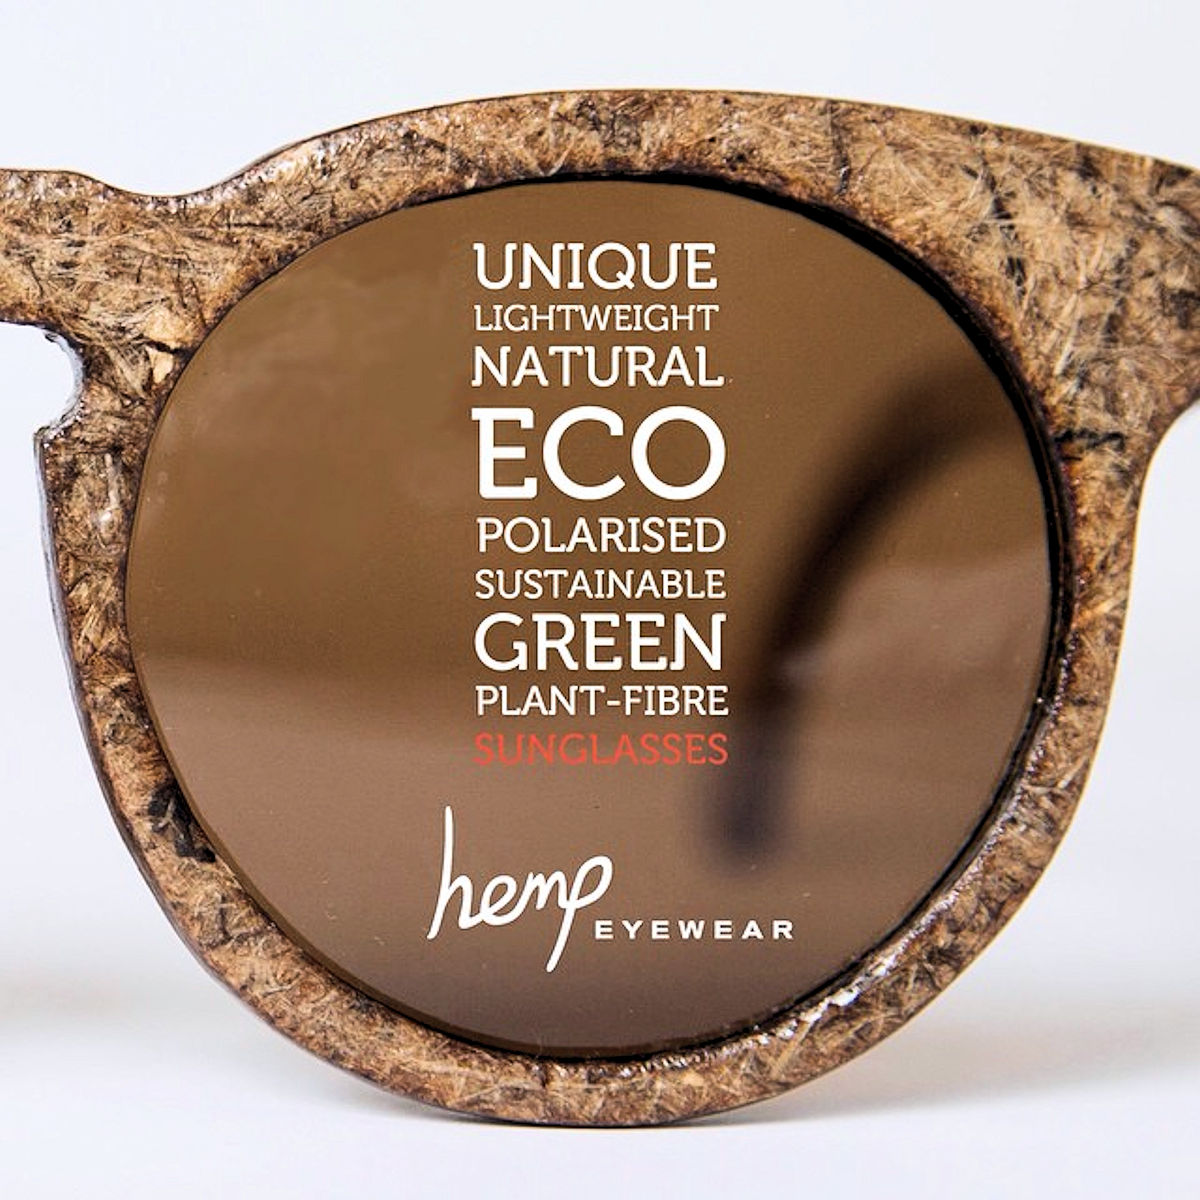 Hemp Eyewear - Hemp Eyewear has developed sustainable, leading edge technologies and combined them with traditional methods of craftsmanship to produce innovative, forward-thinking eyewear.By using one of the most renewable, eco-friendly and diverse resources on Earth, our vision is to promote hemp as a sustainable material for the future. Every frame is handcrafted in their Edinburgh, U.K. workshop with expertly engineered components.Evolution Mine is excited to introduce Hemp Eyewear. Now being offered in the United States through a limited release.